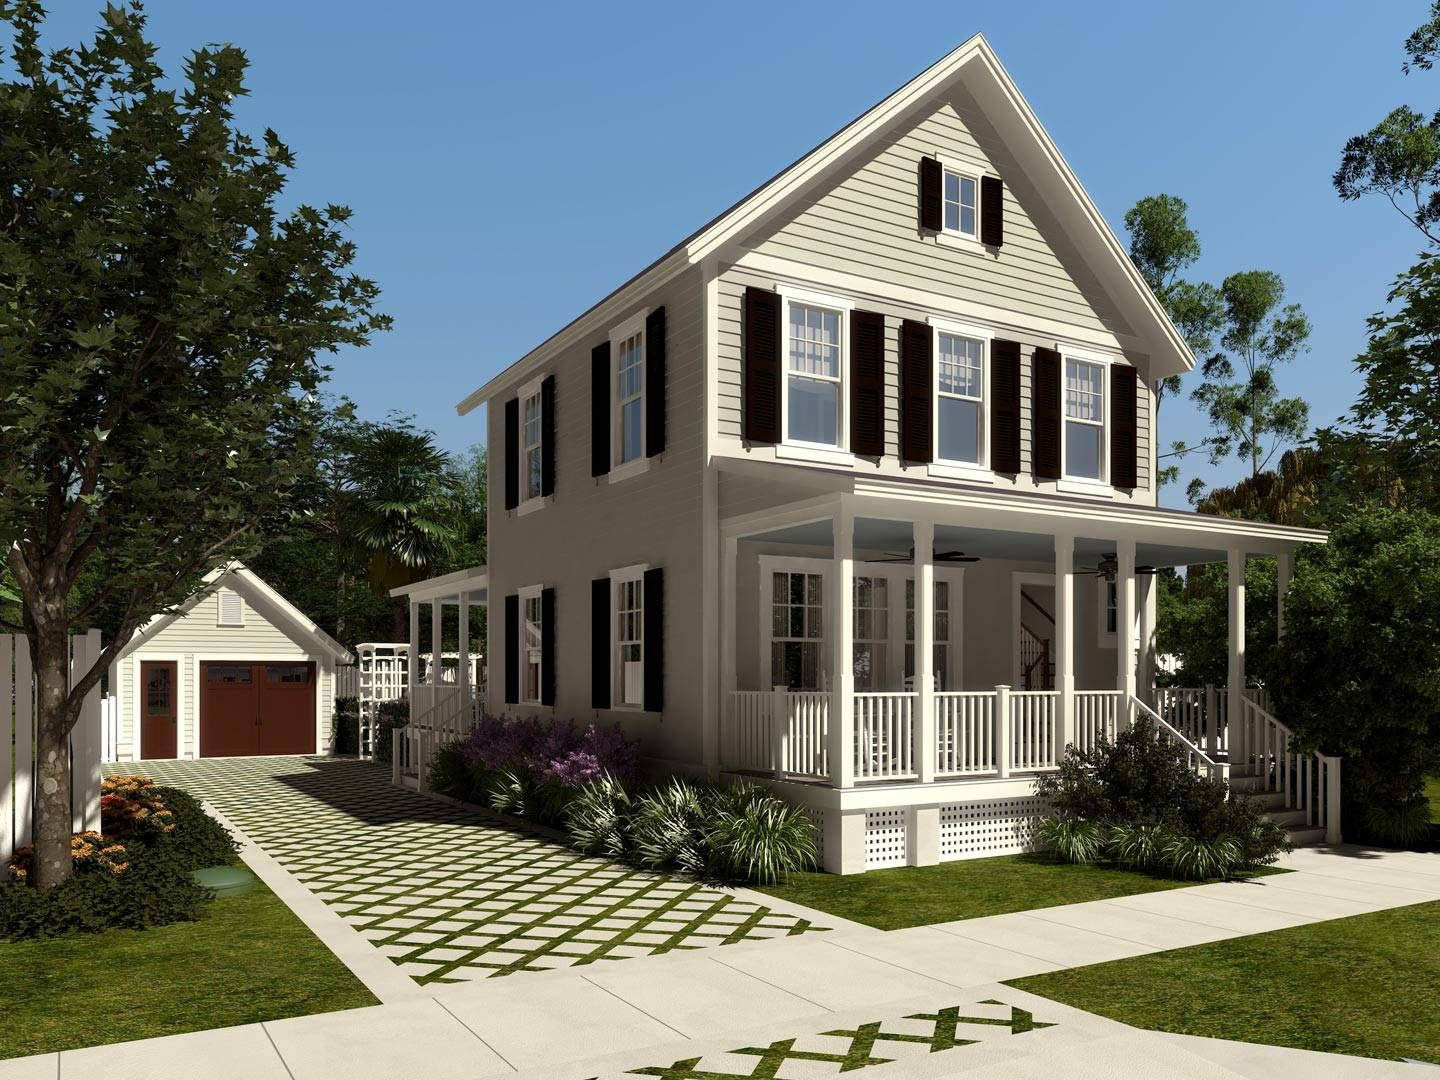 9 building plans for cozy affordable cottages folk for Historical home plans